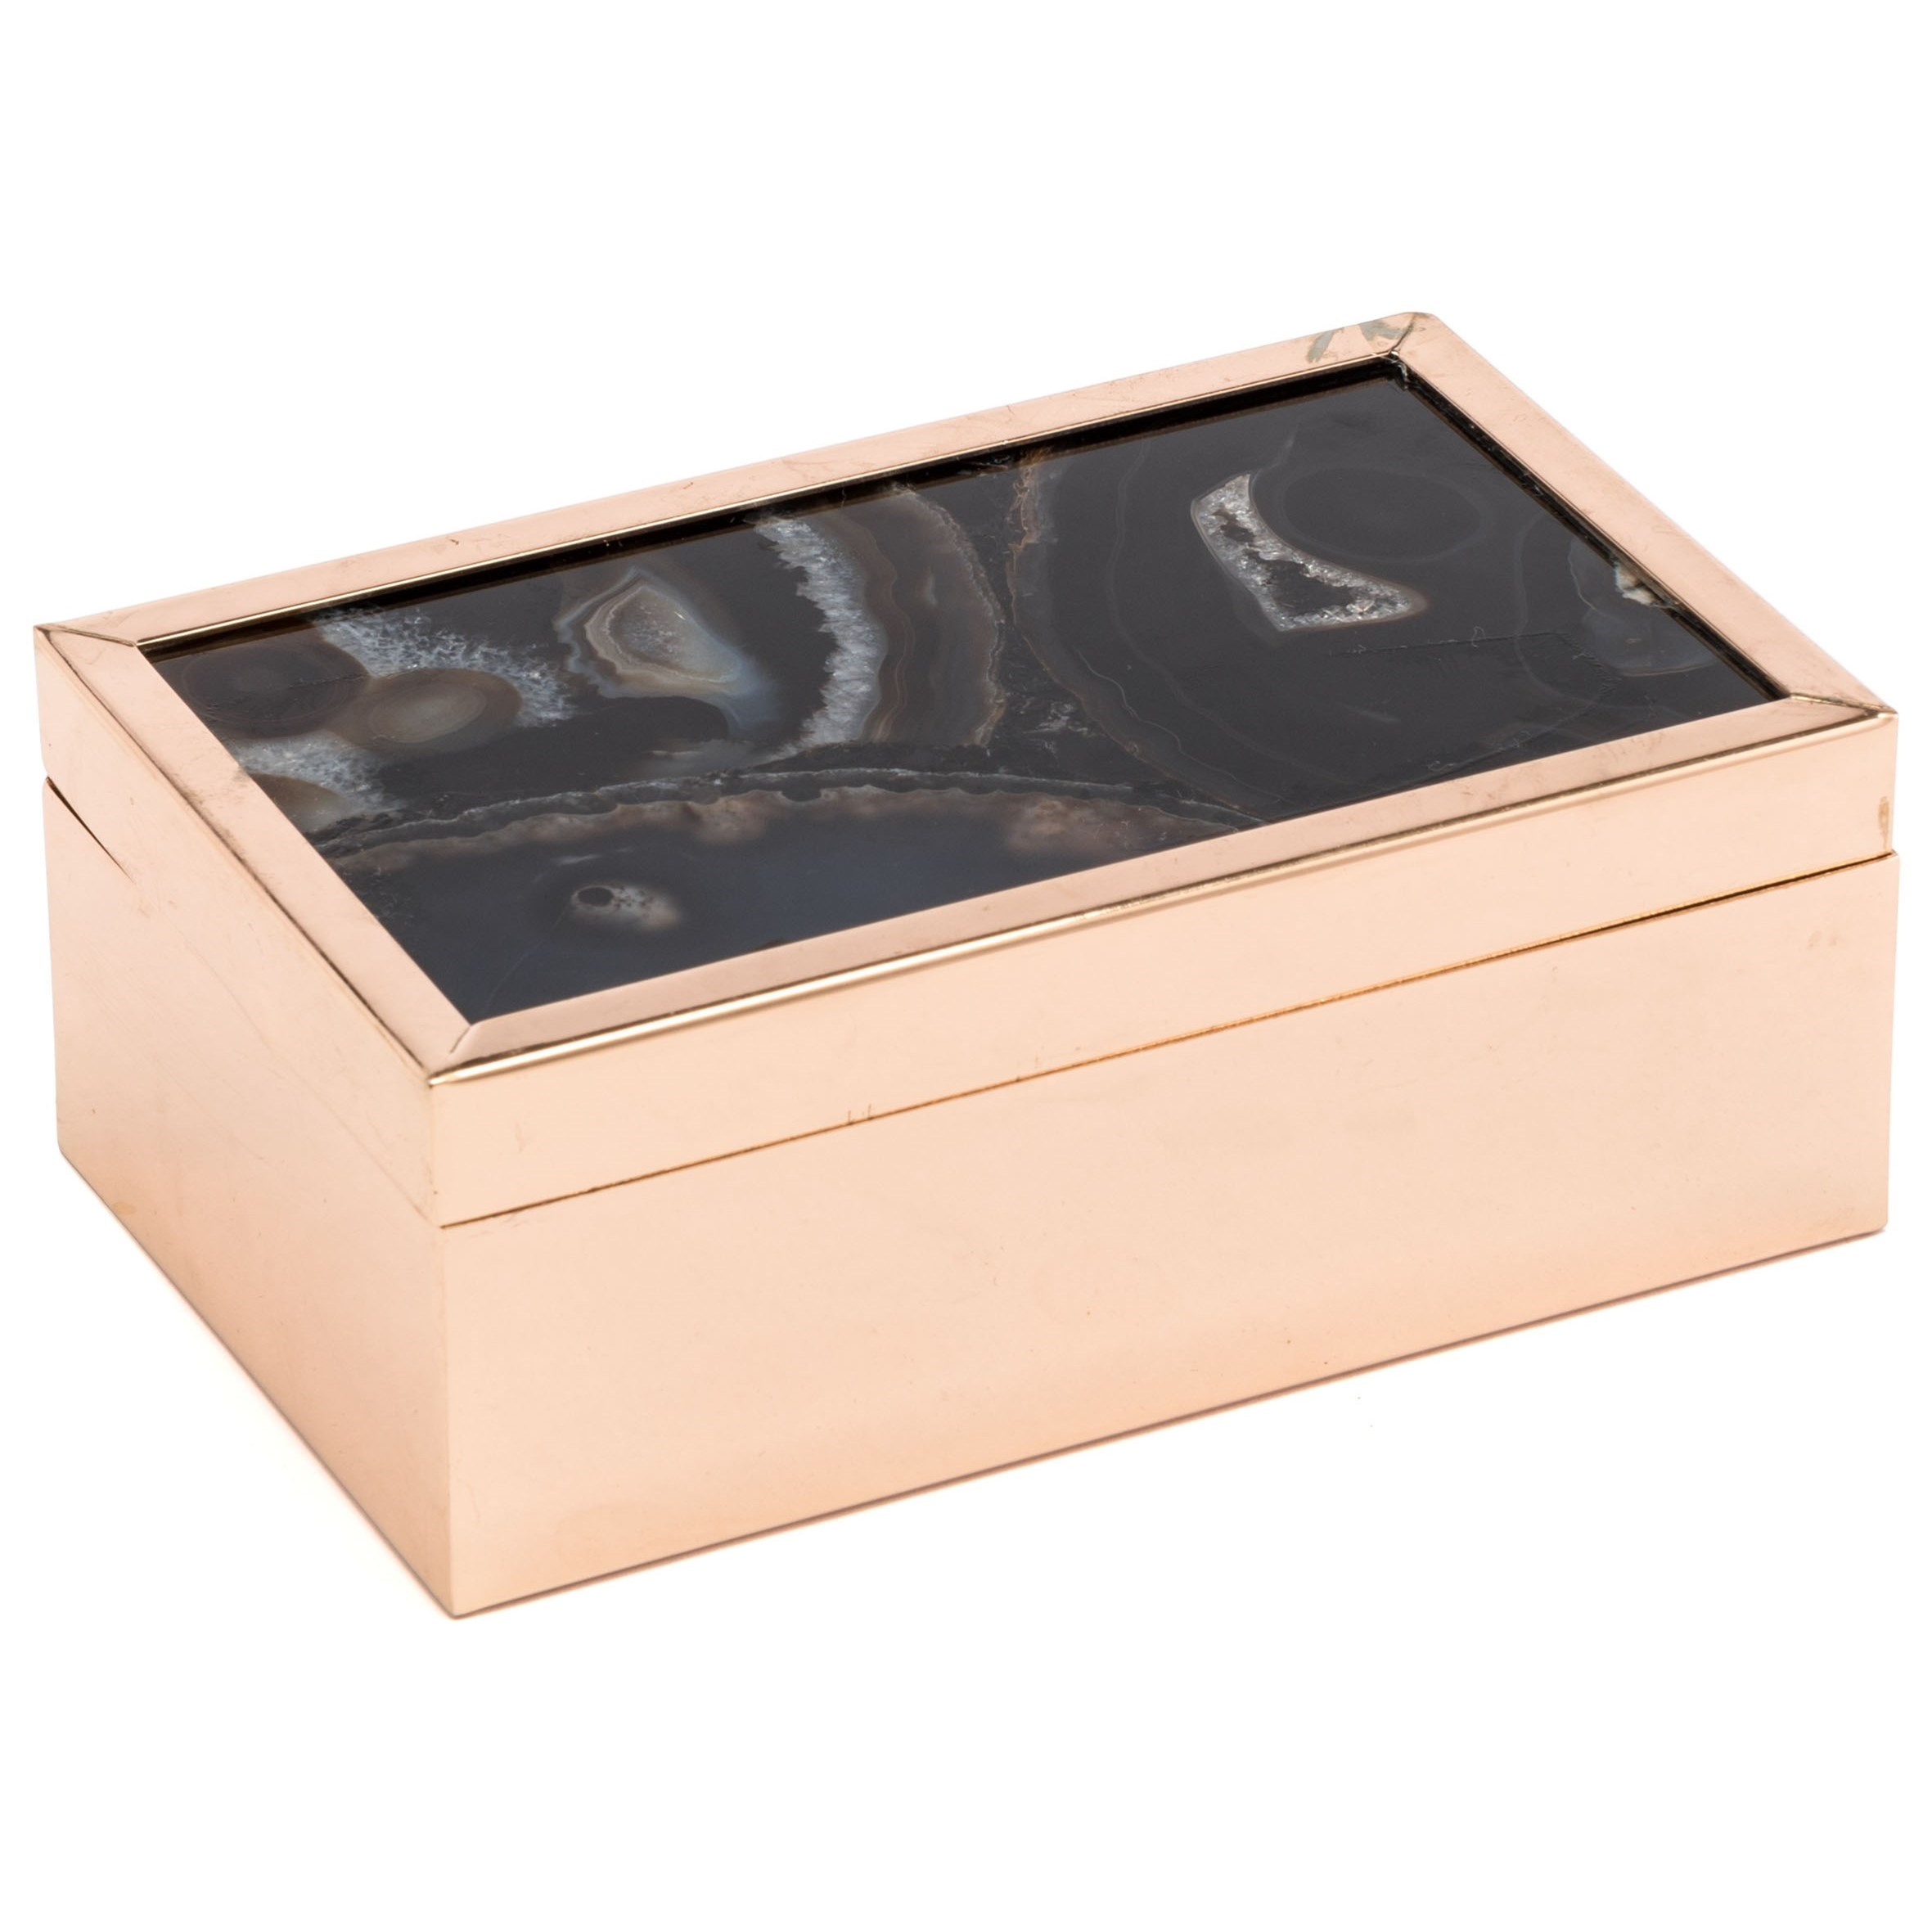 Boxes, Bowls and Trays Black Stone Box Small by Zuo at Nassau Furniture and Mattress